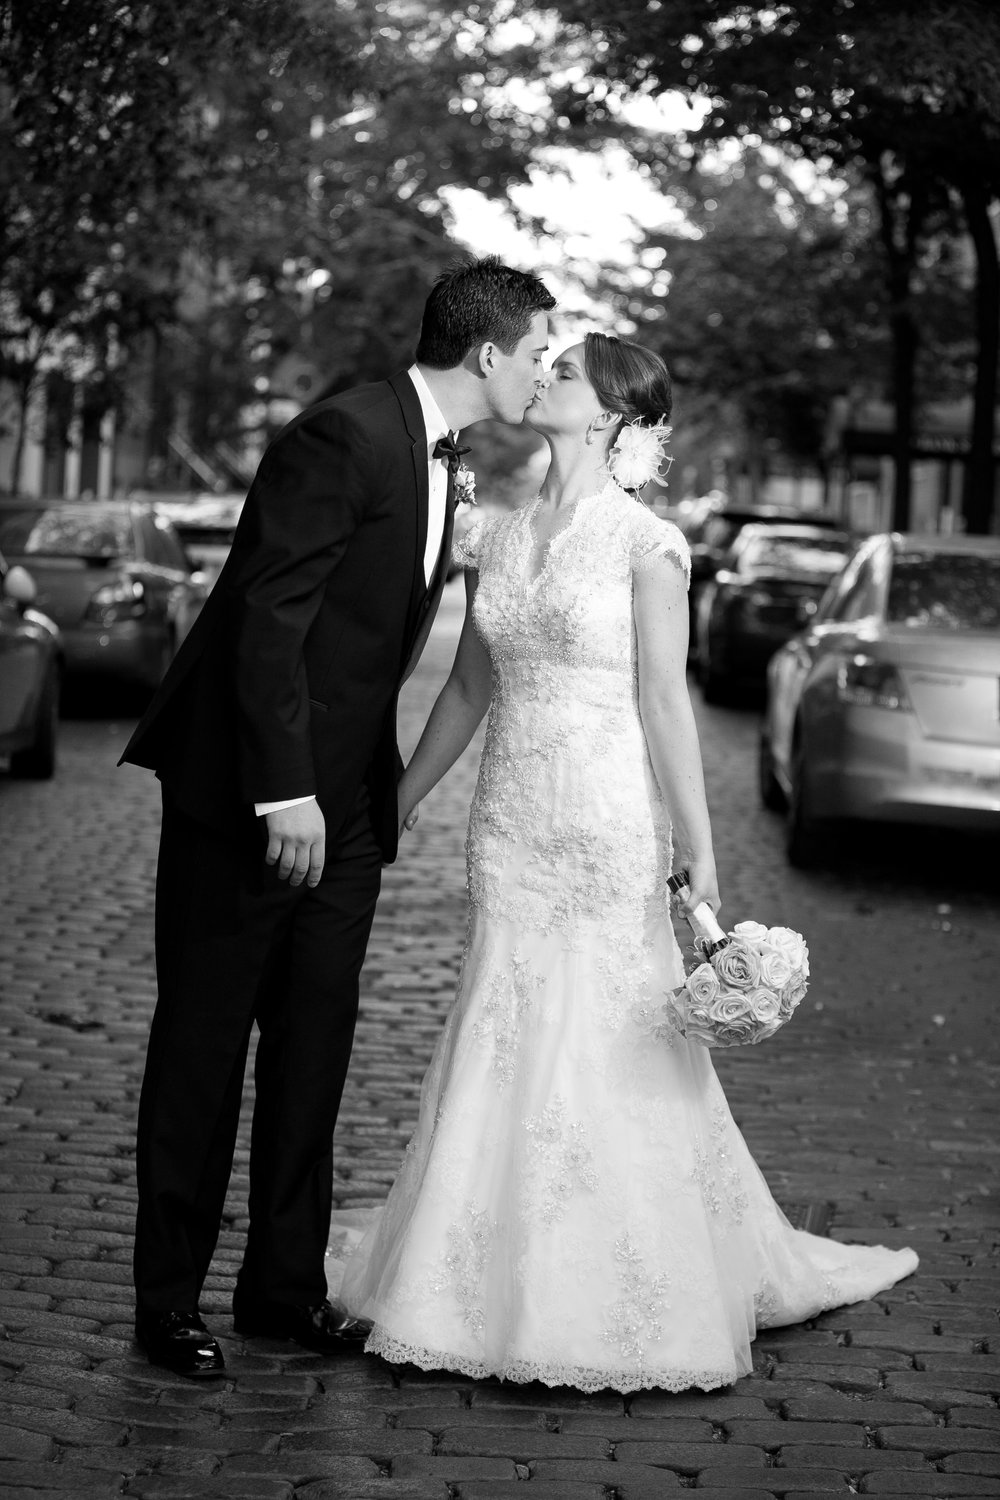 Jillian & Nick | Ramscale | New York